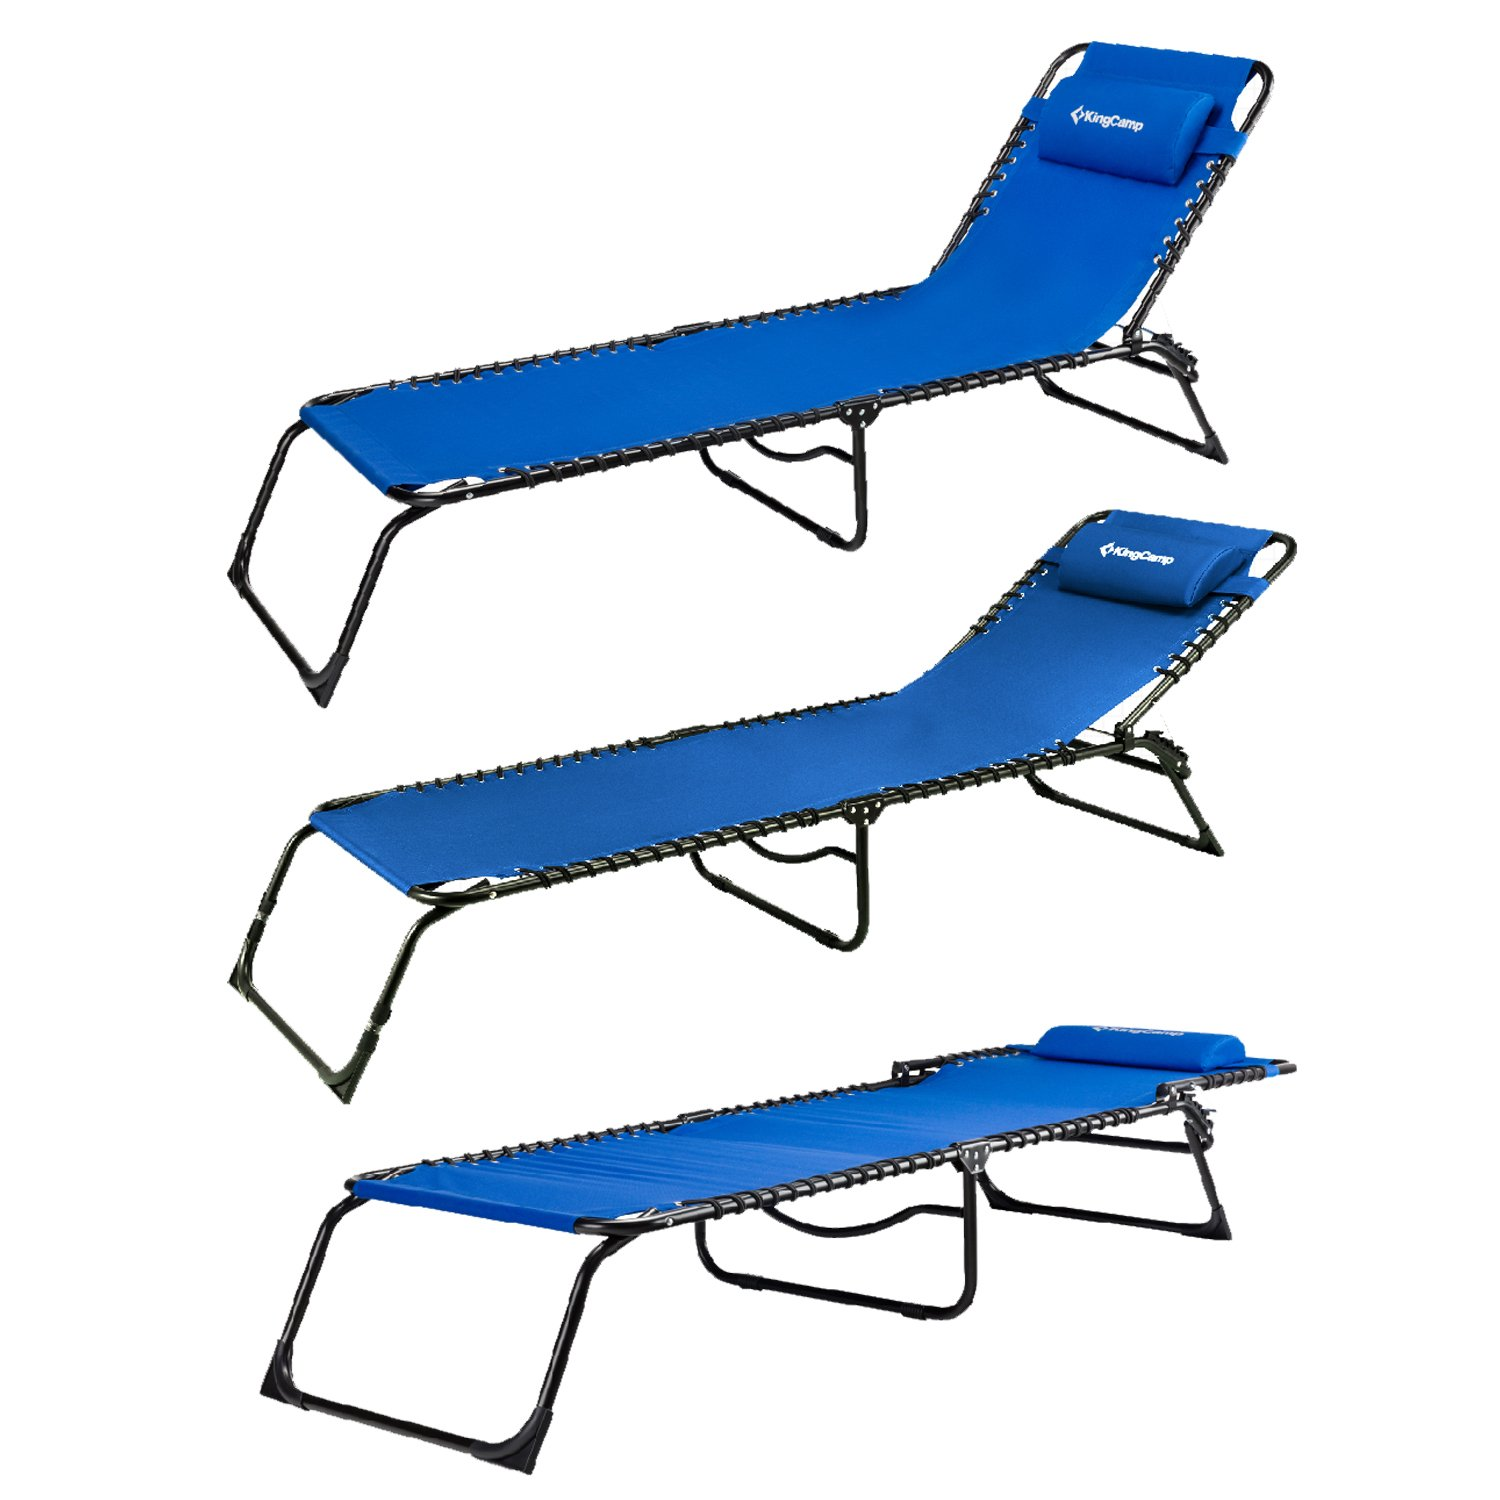 bc2c4f34f62d KingCamp Camping Cot Patio Foldable Chaise Lounge Chair Bed(Blue) -  0747100949067 < Lounge Chairs < Patio, Lawn & Garden - tibs